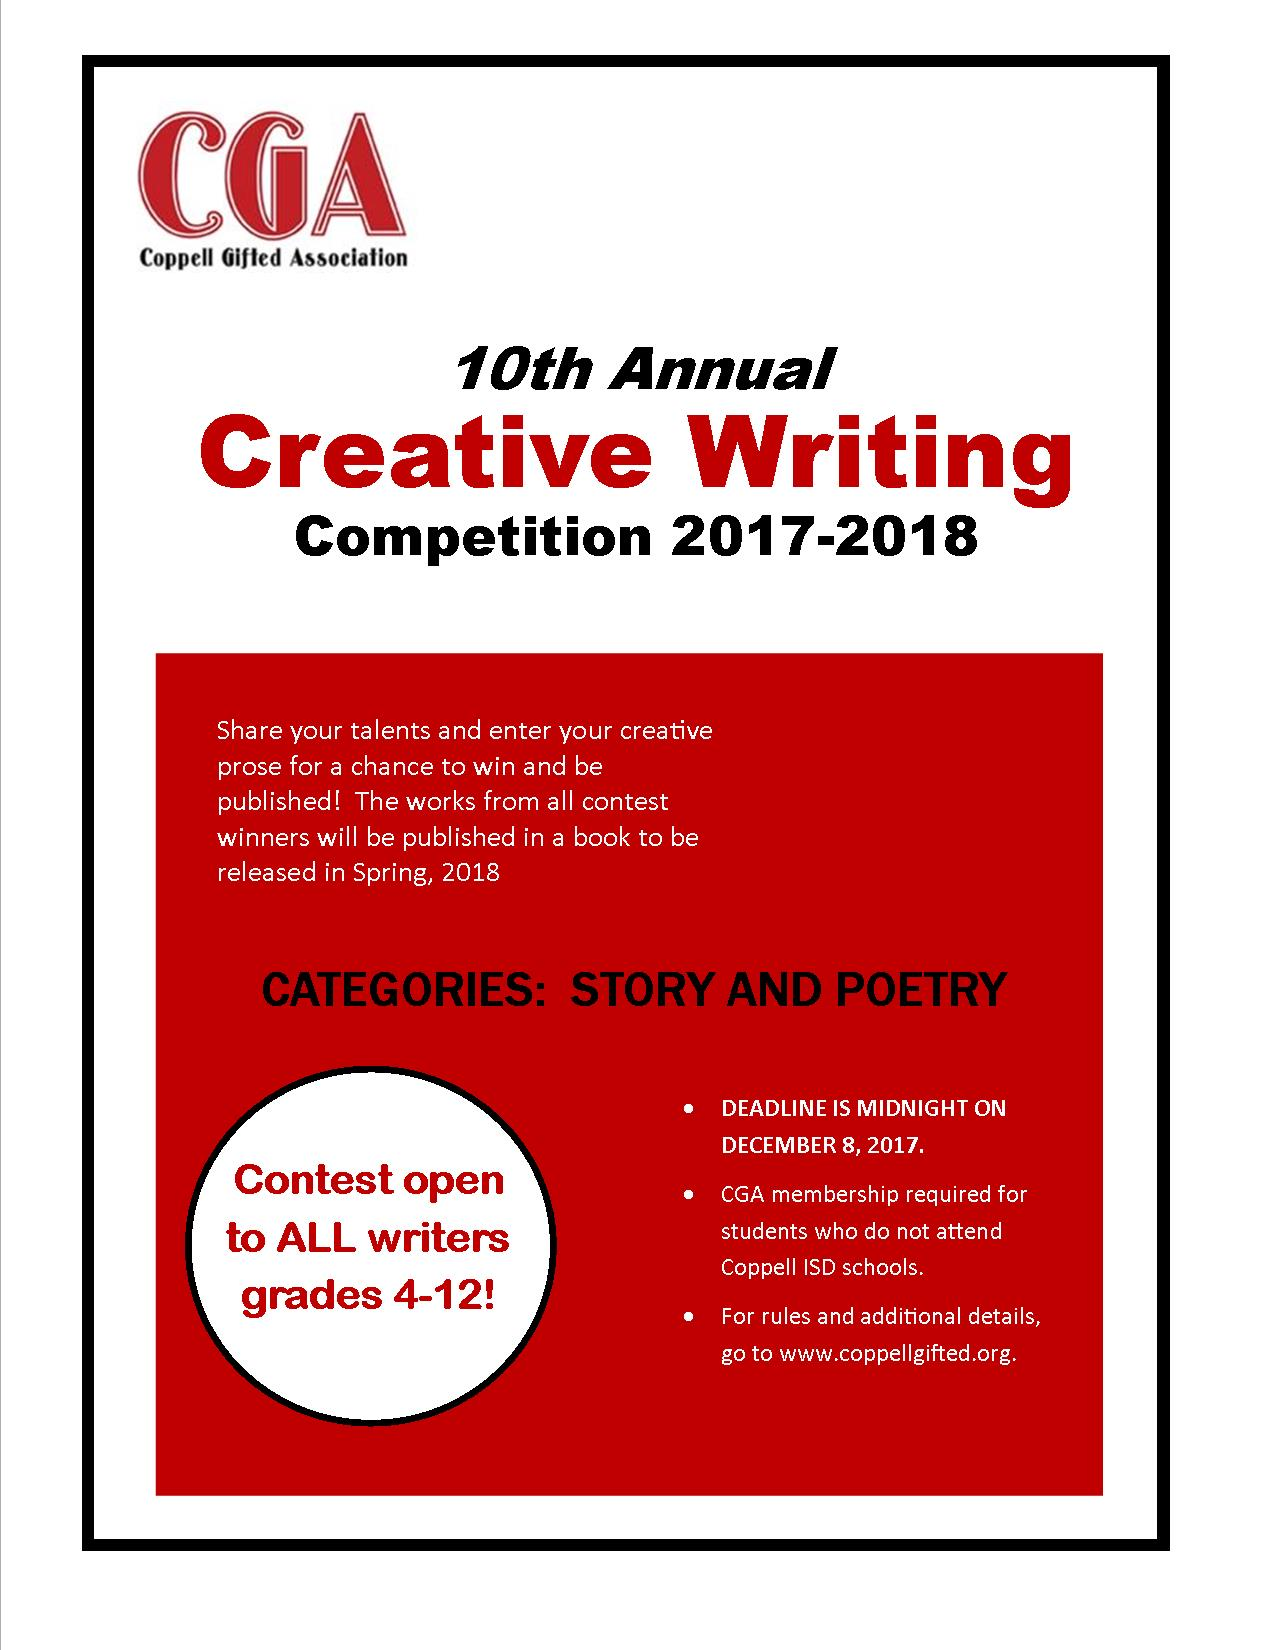 Essay writing competition for college students